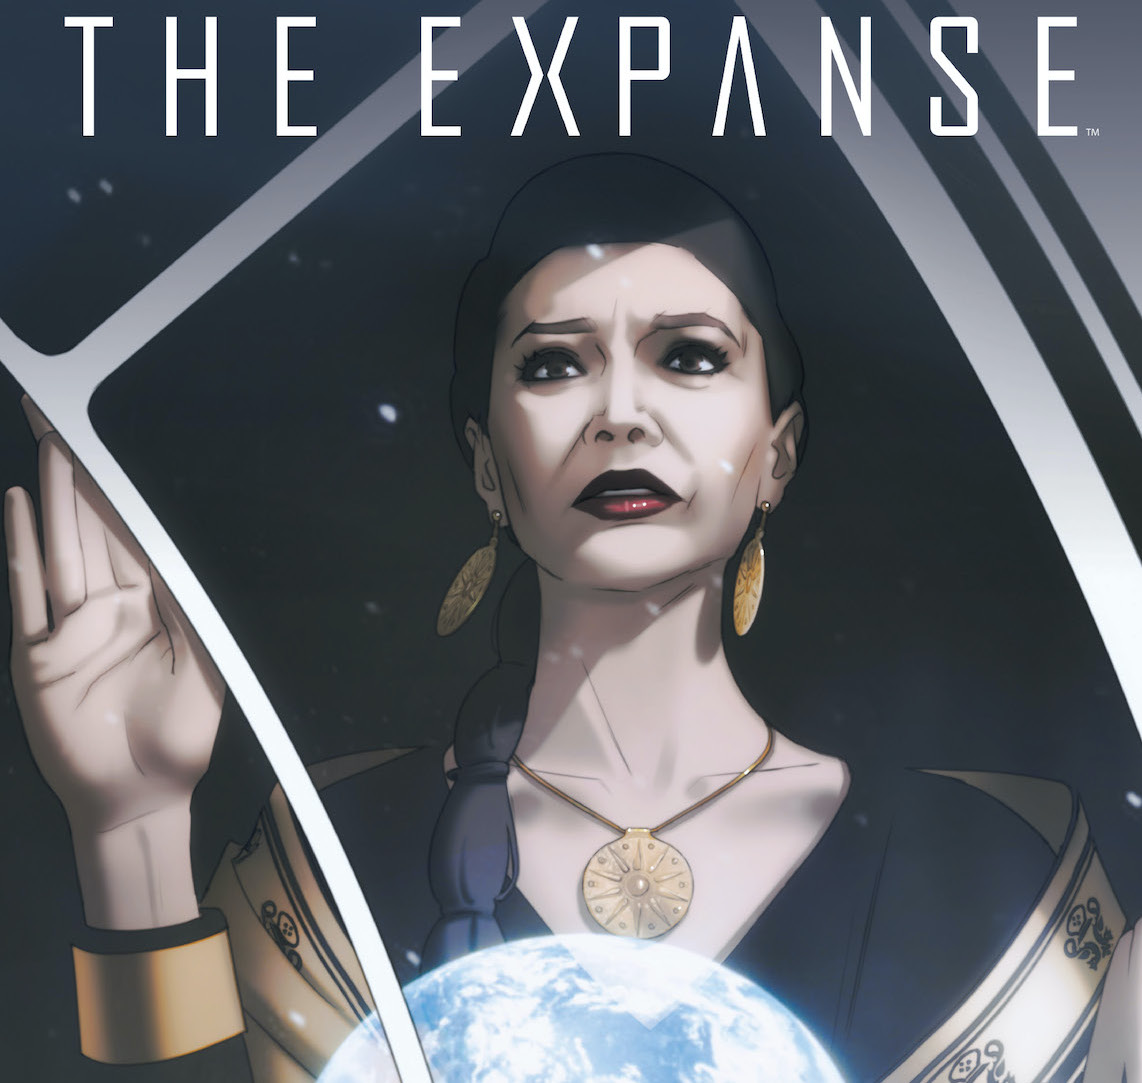 EXCLUSIVE BOOM! Preview: The Expanse #2